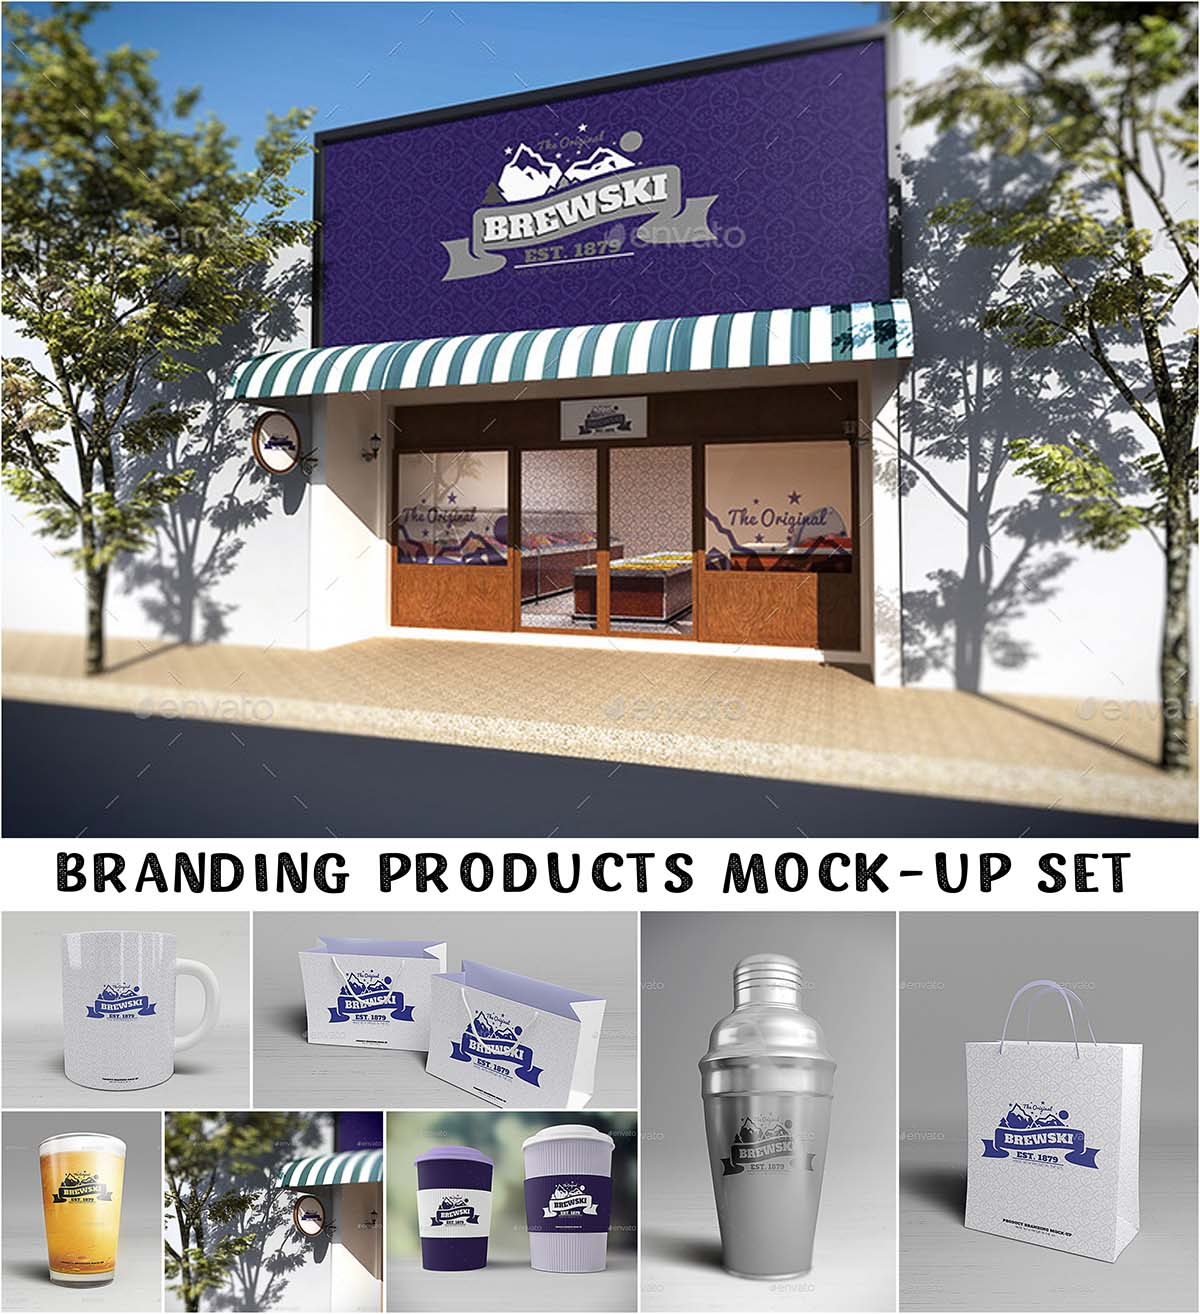 Branding products mockup